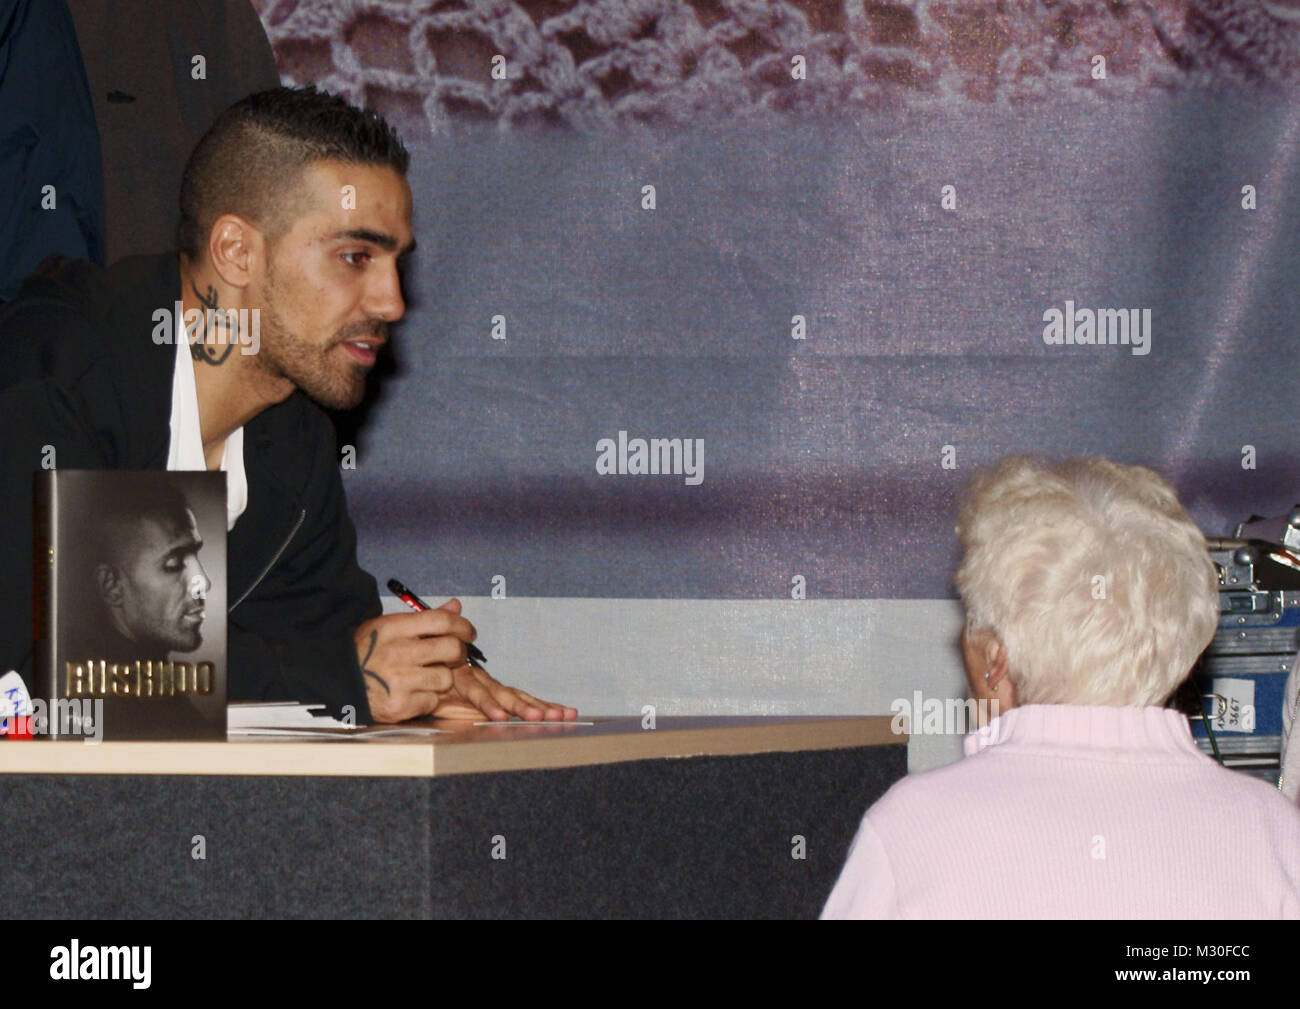 Mohamed Youssef Stock Photos & Mohamed Youssef Stock Images - Alamy